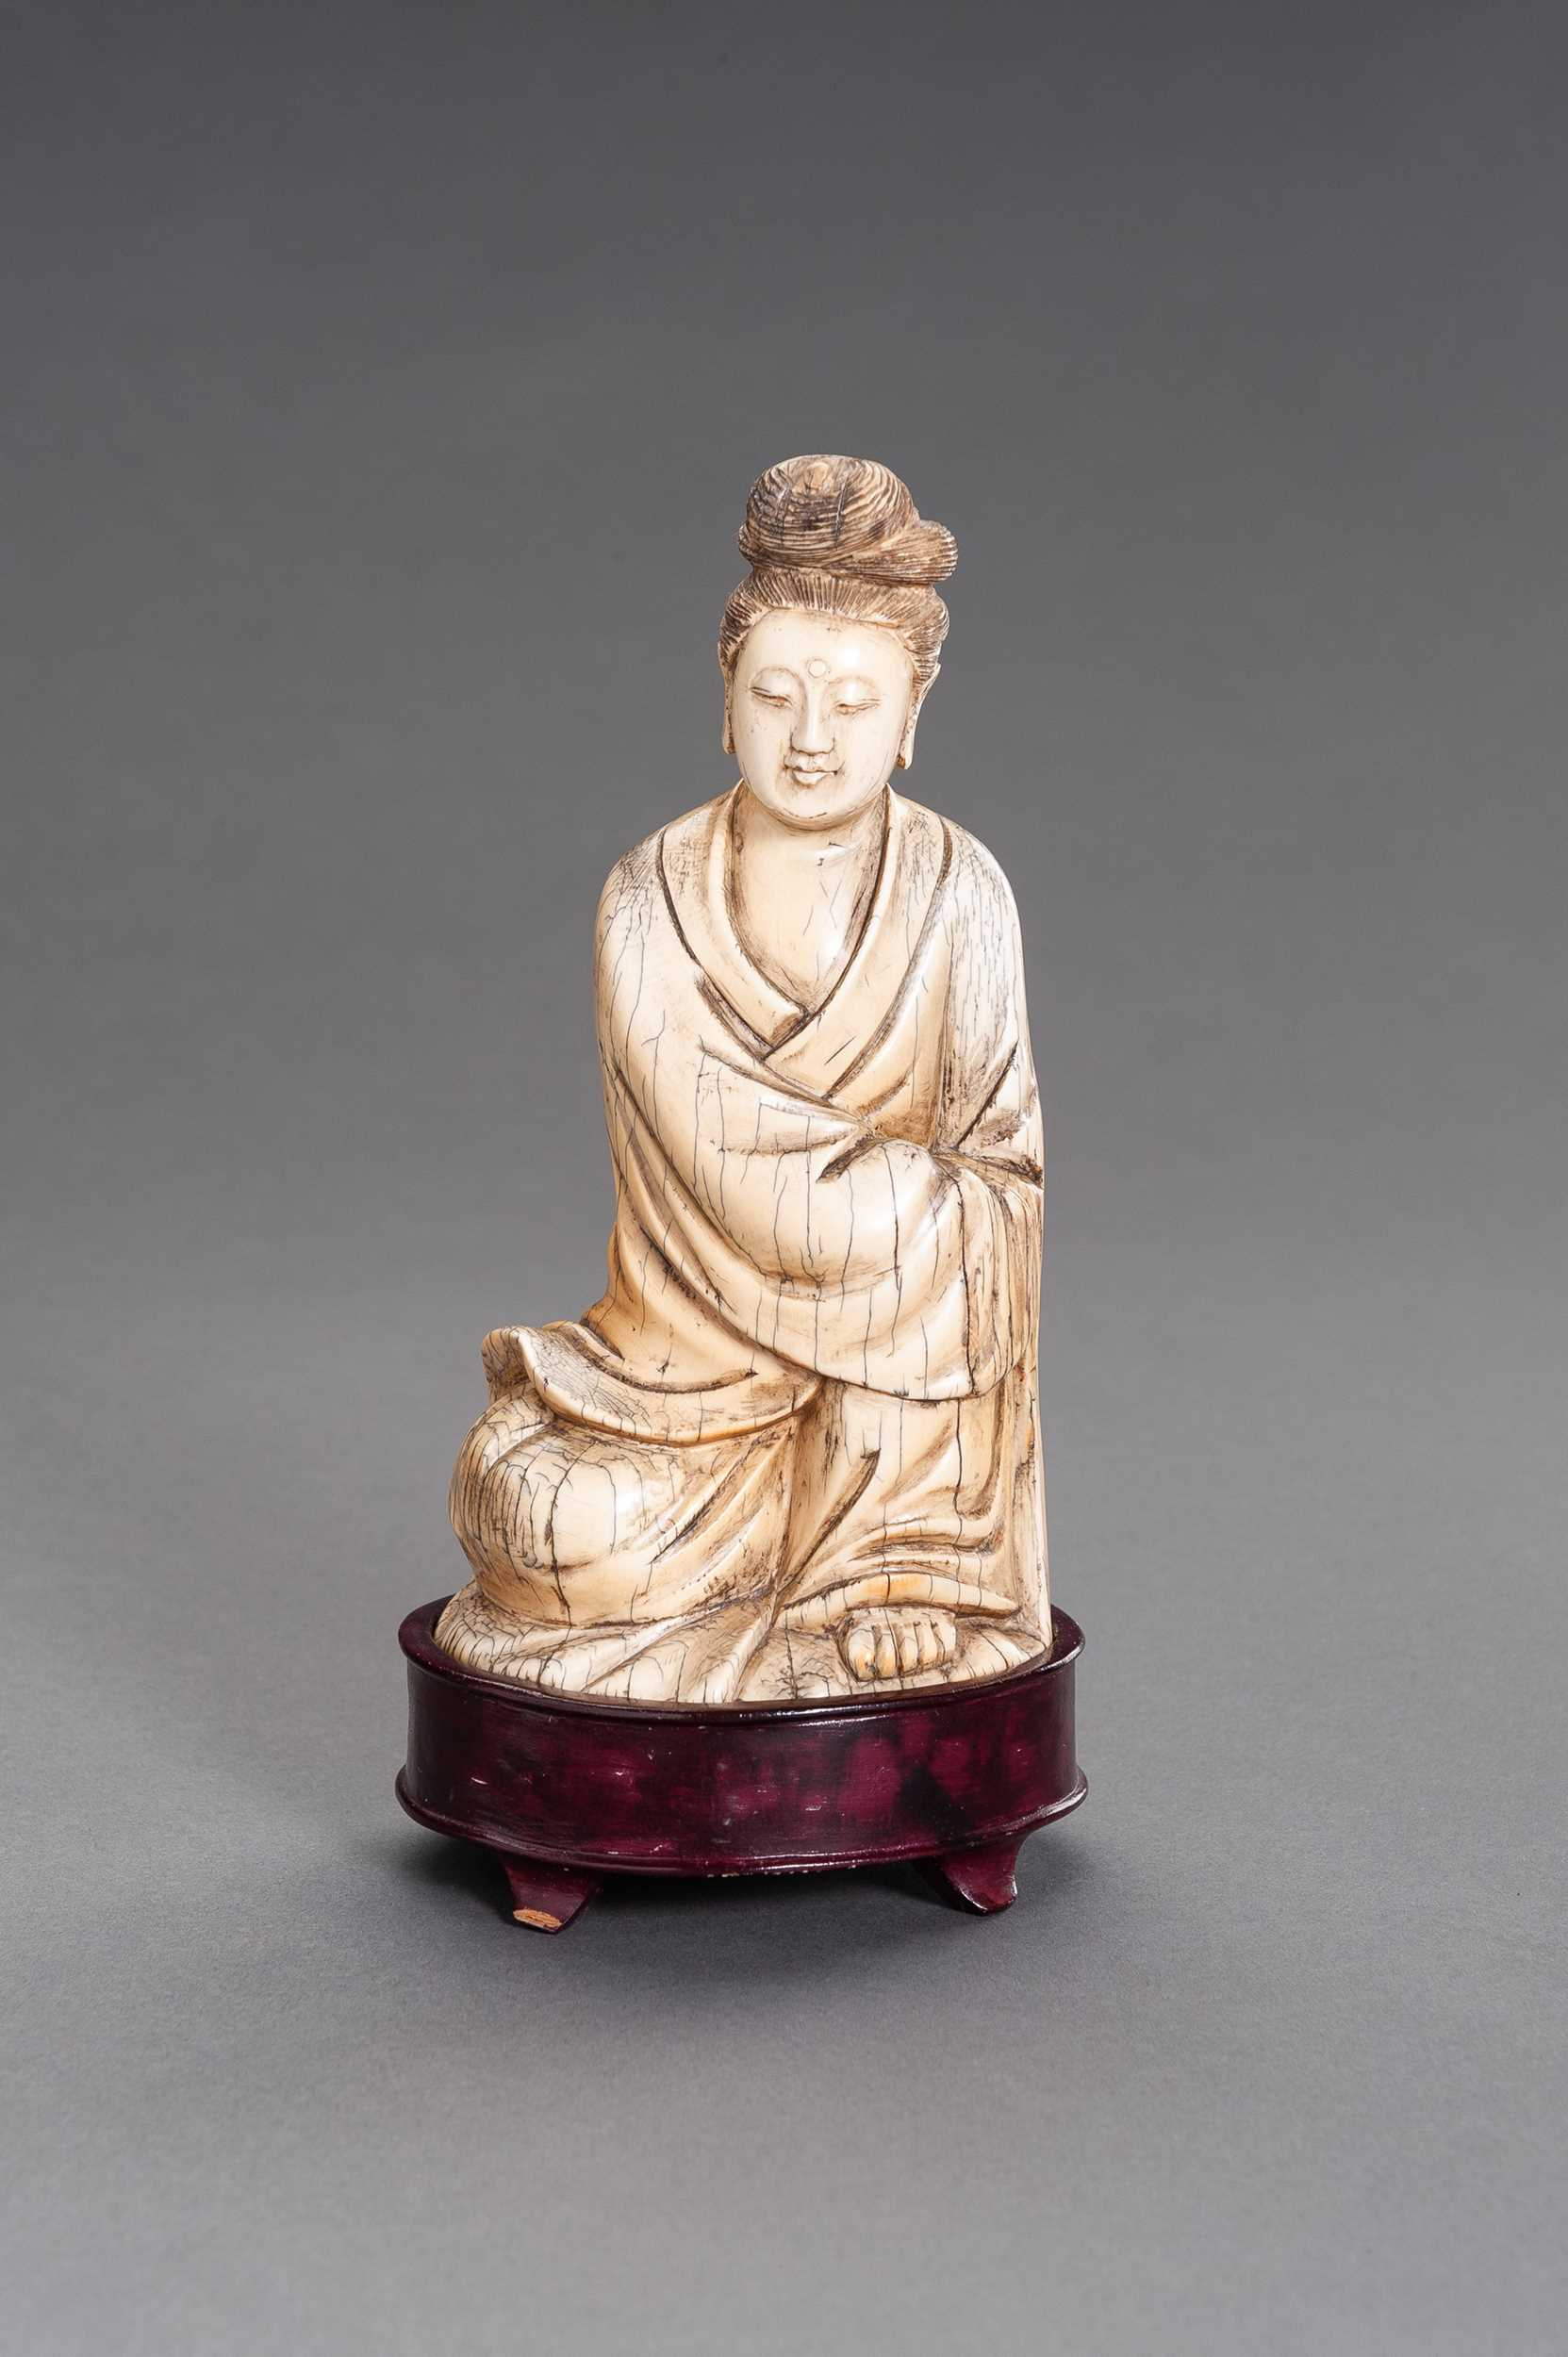 Lot 53 - A MING-STYLE IVORY FIGURE OF GUANYIN, QING DYNASTY